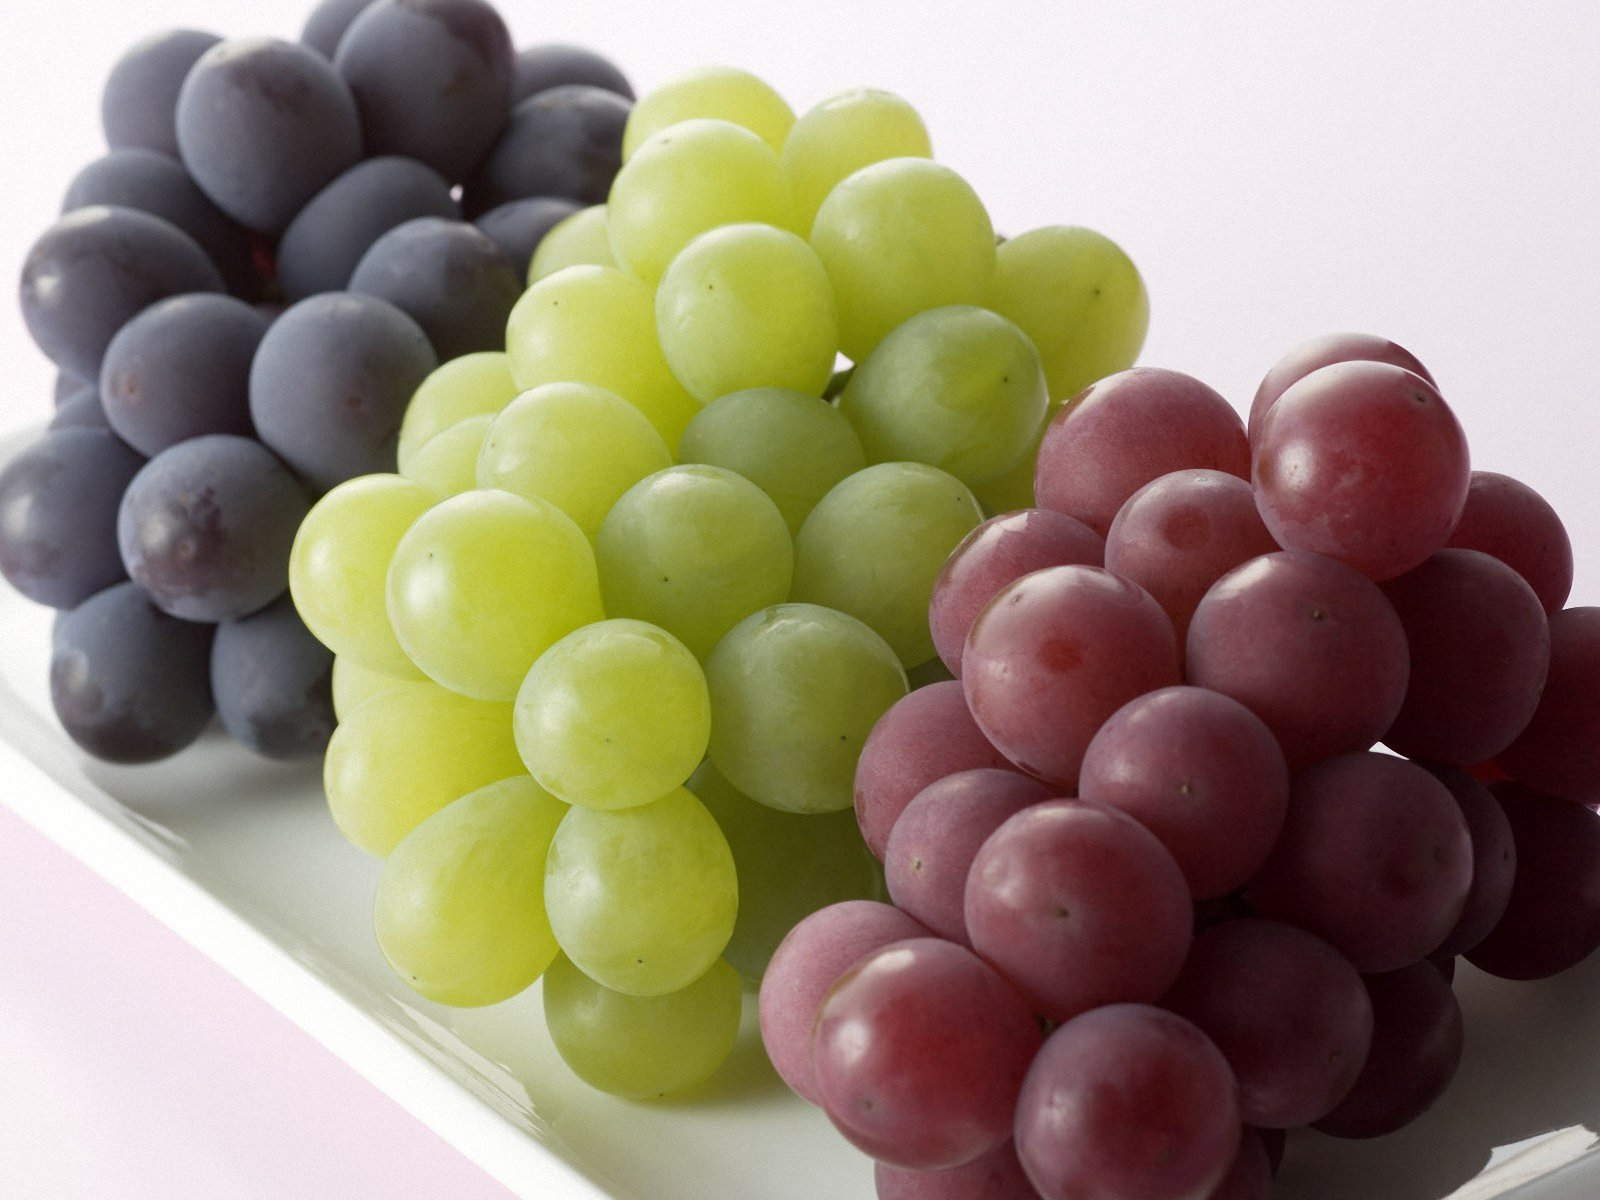 grape-wallpaper_174649-1600x1200